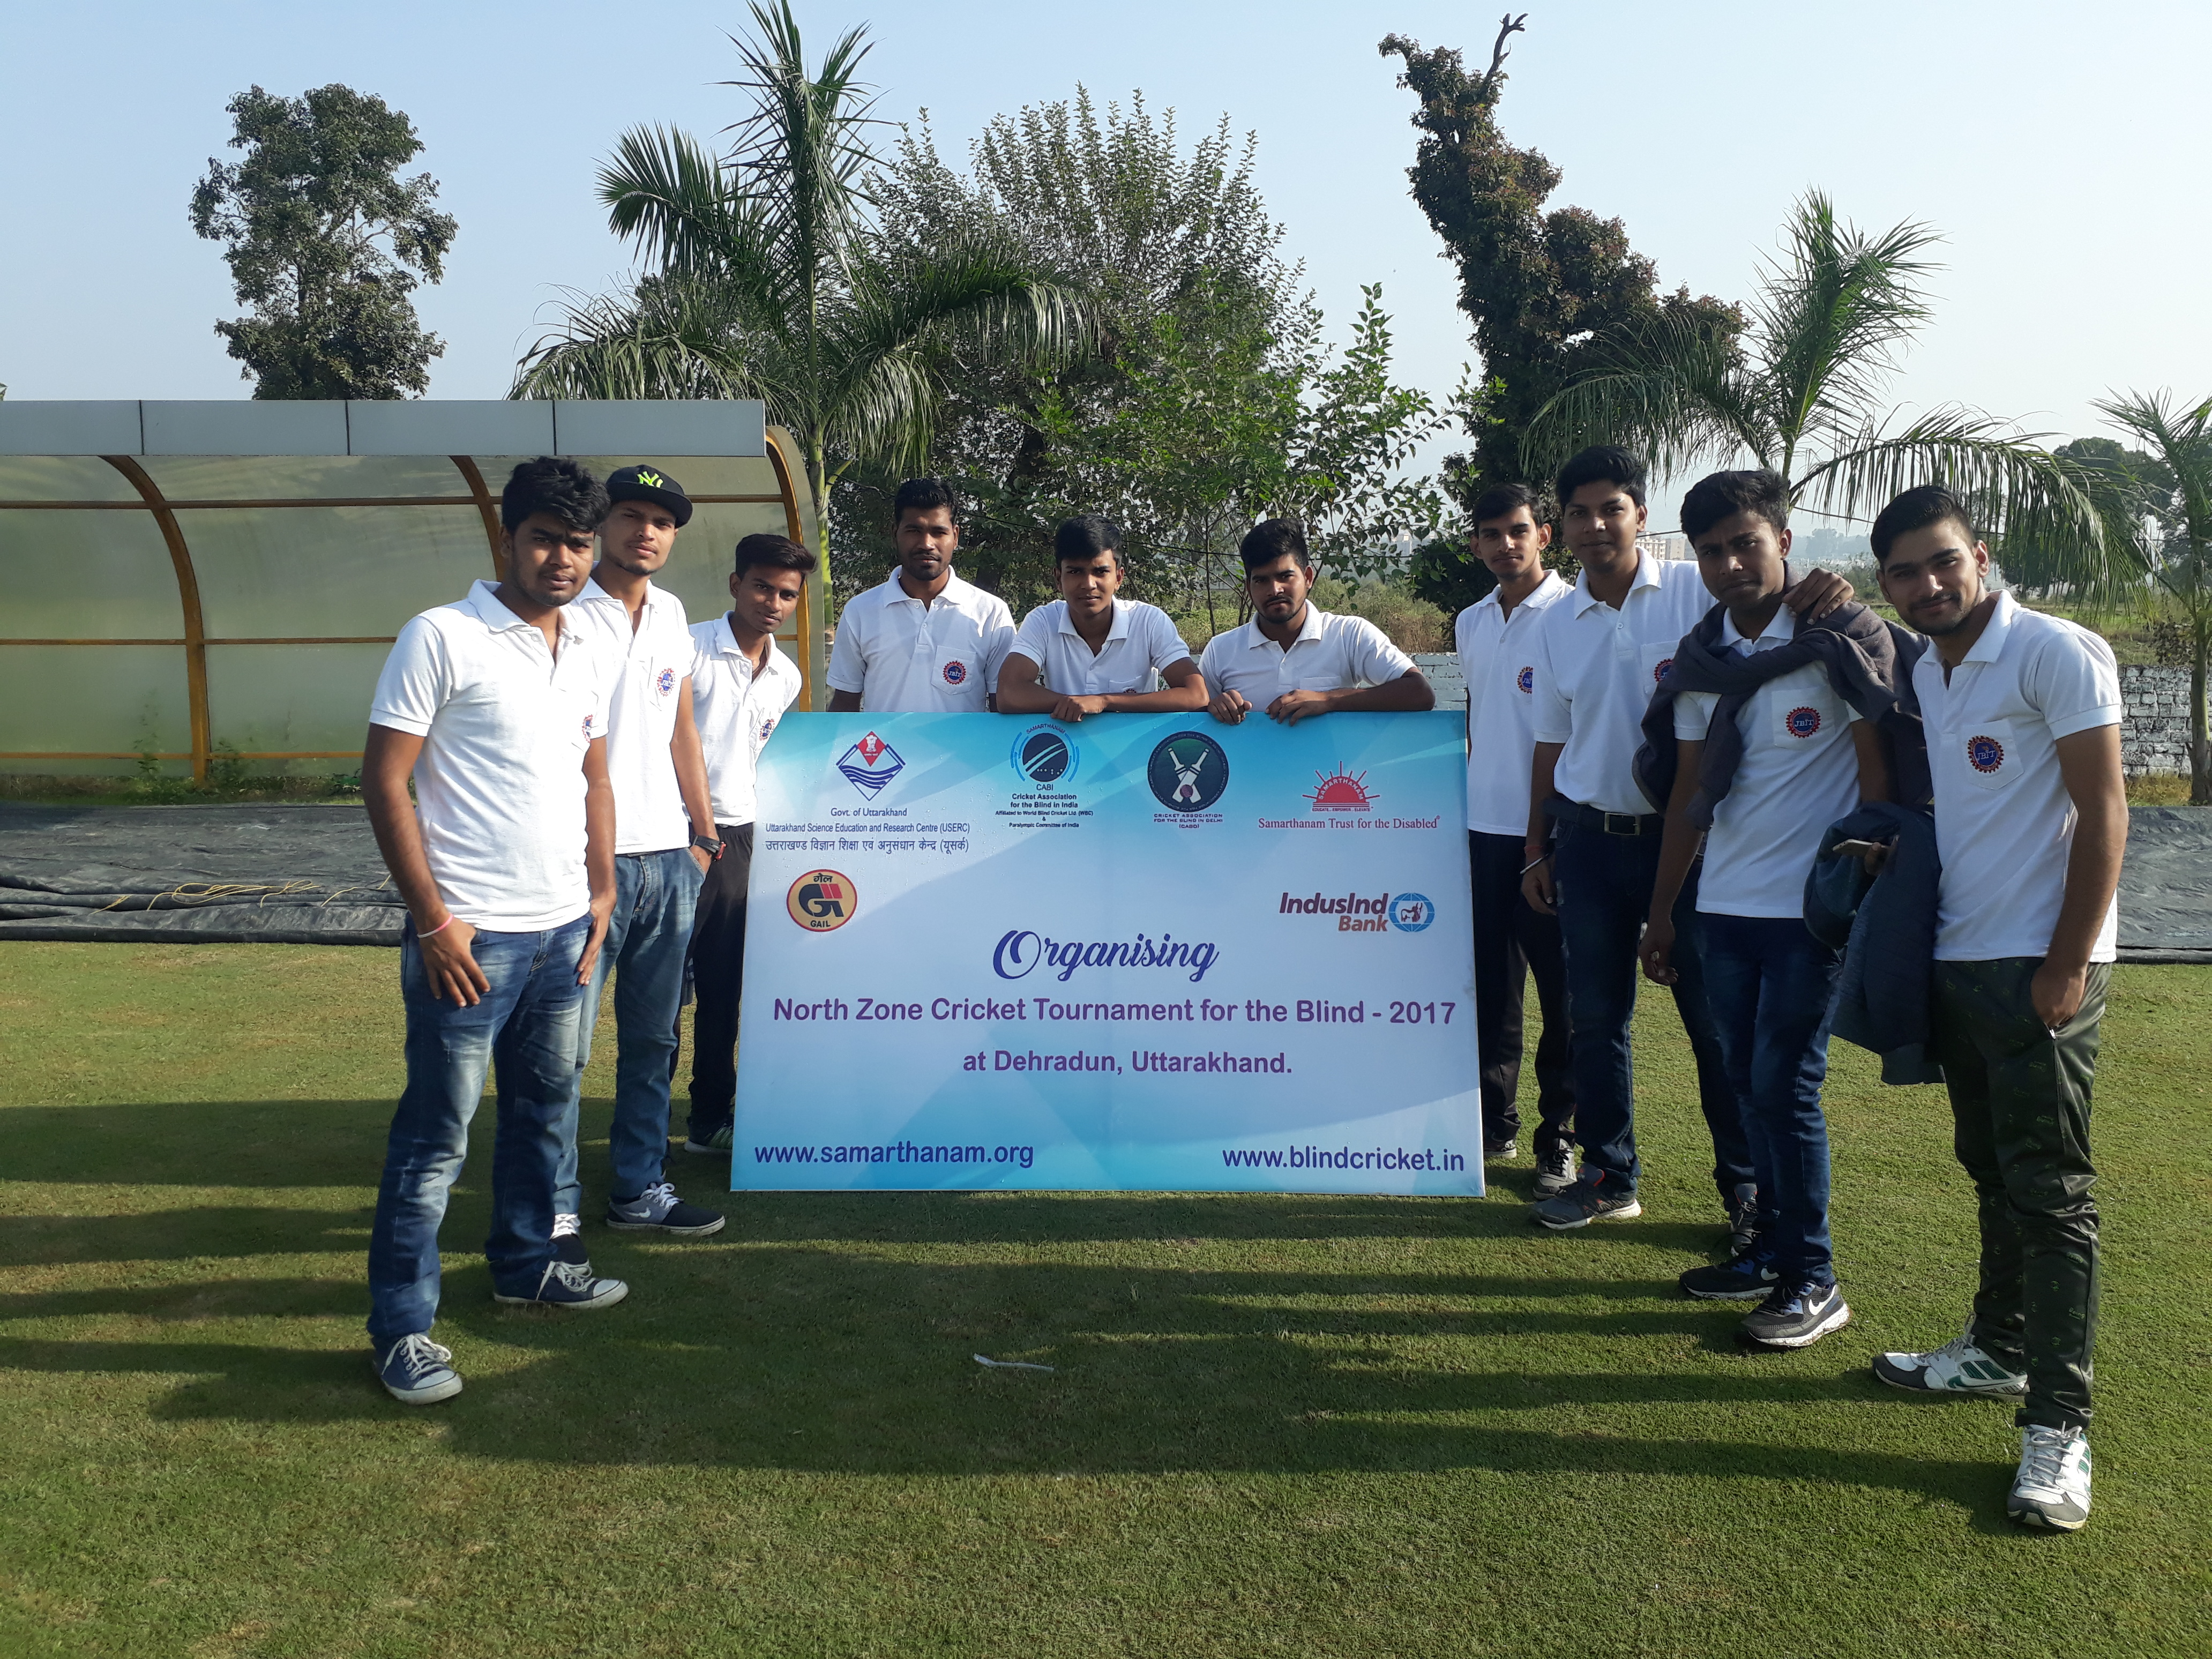 North Zone Cricket Tournament for Blind 2017